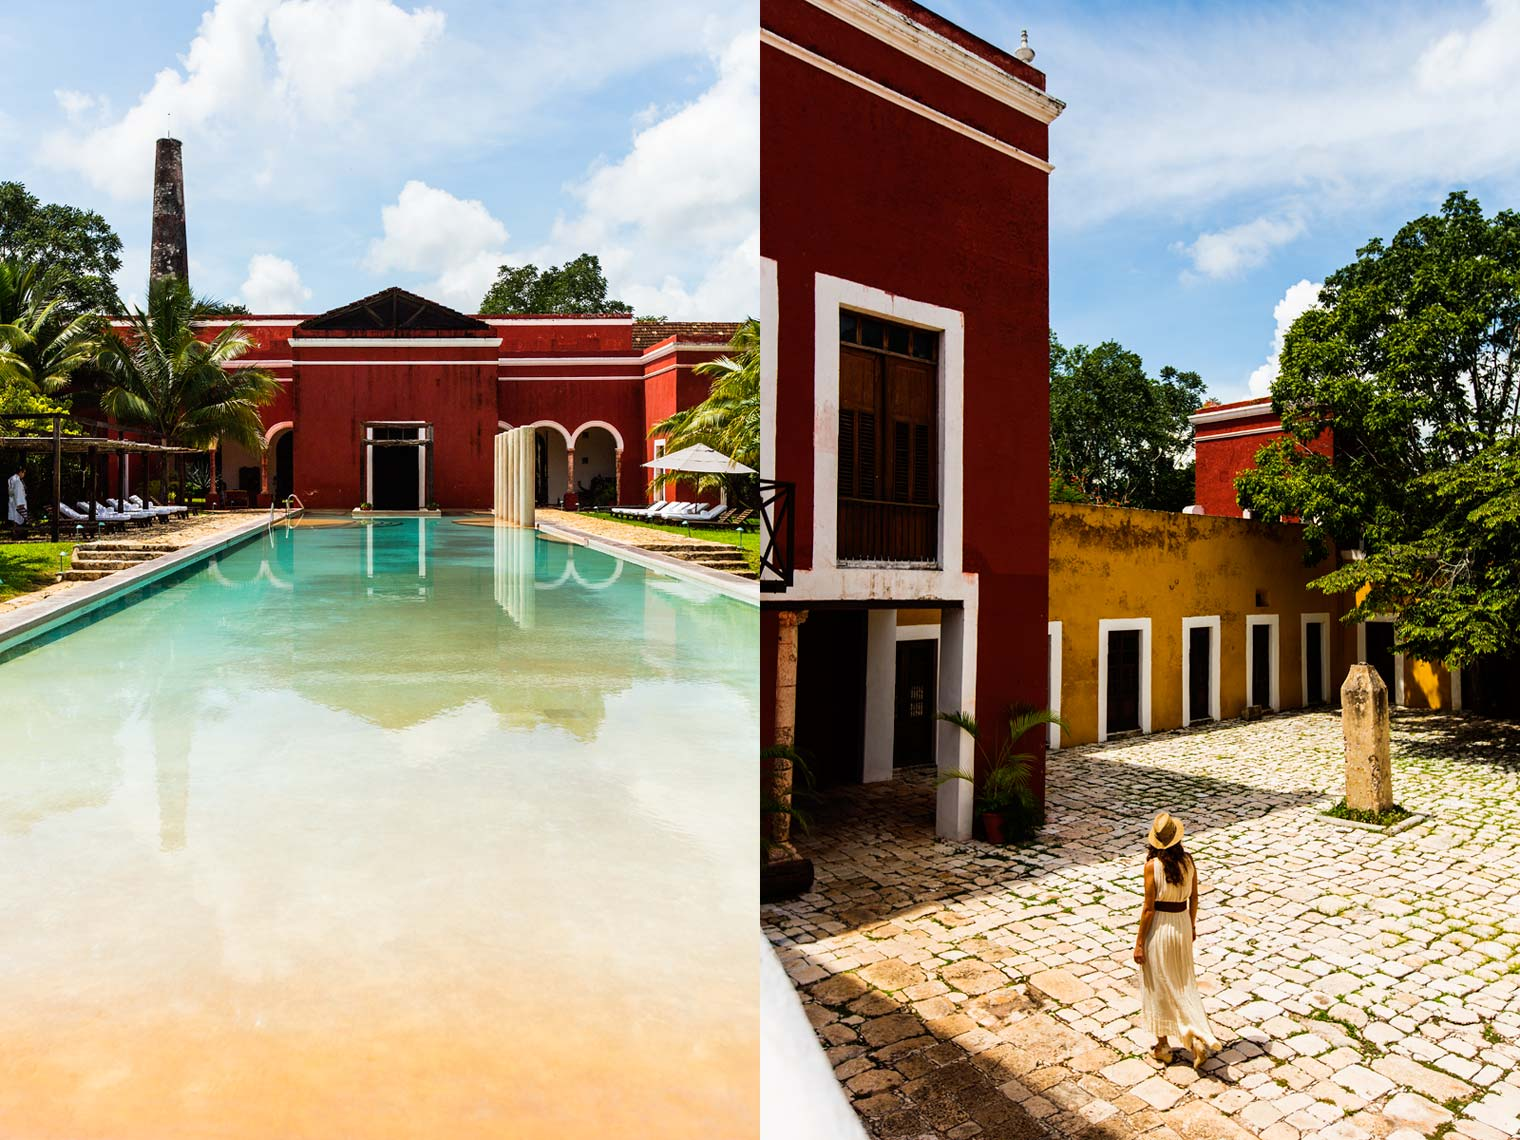 017-Chris-Hunt-Travel-Photography-Mexico-Yucatan-Hacienda-Temozon-0178